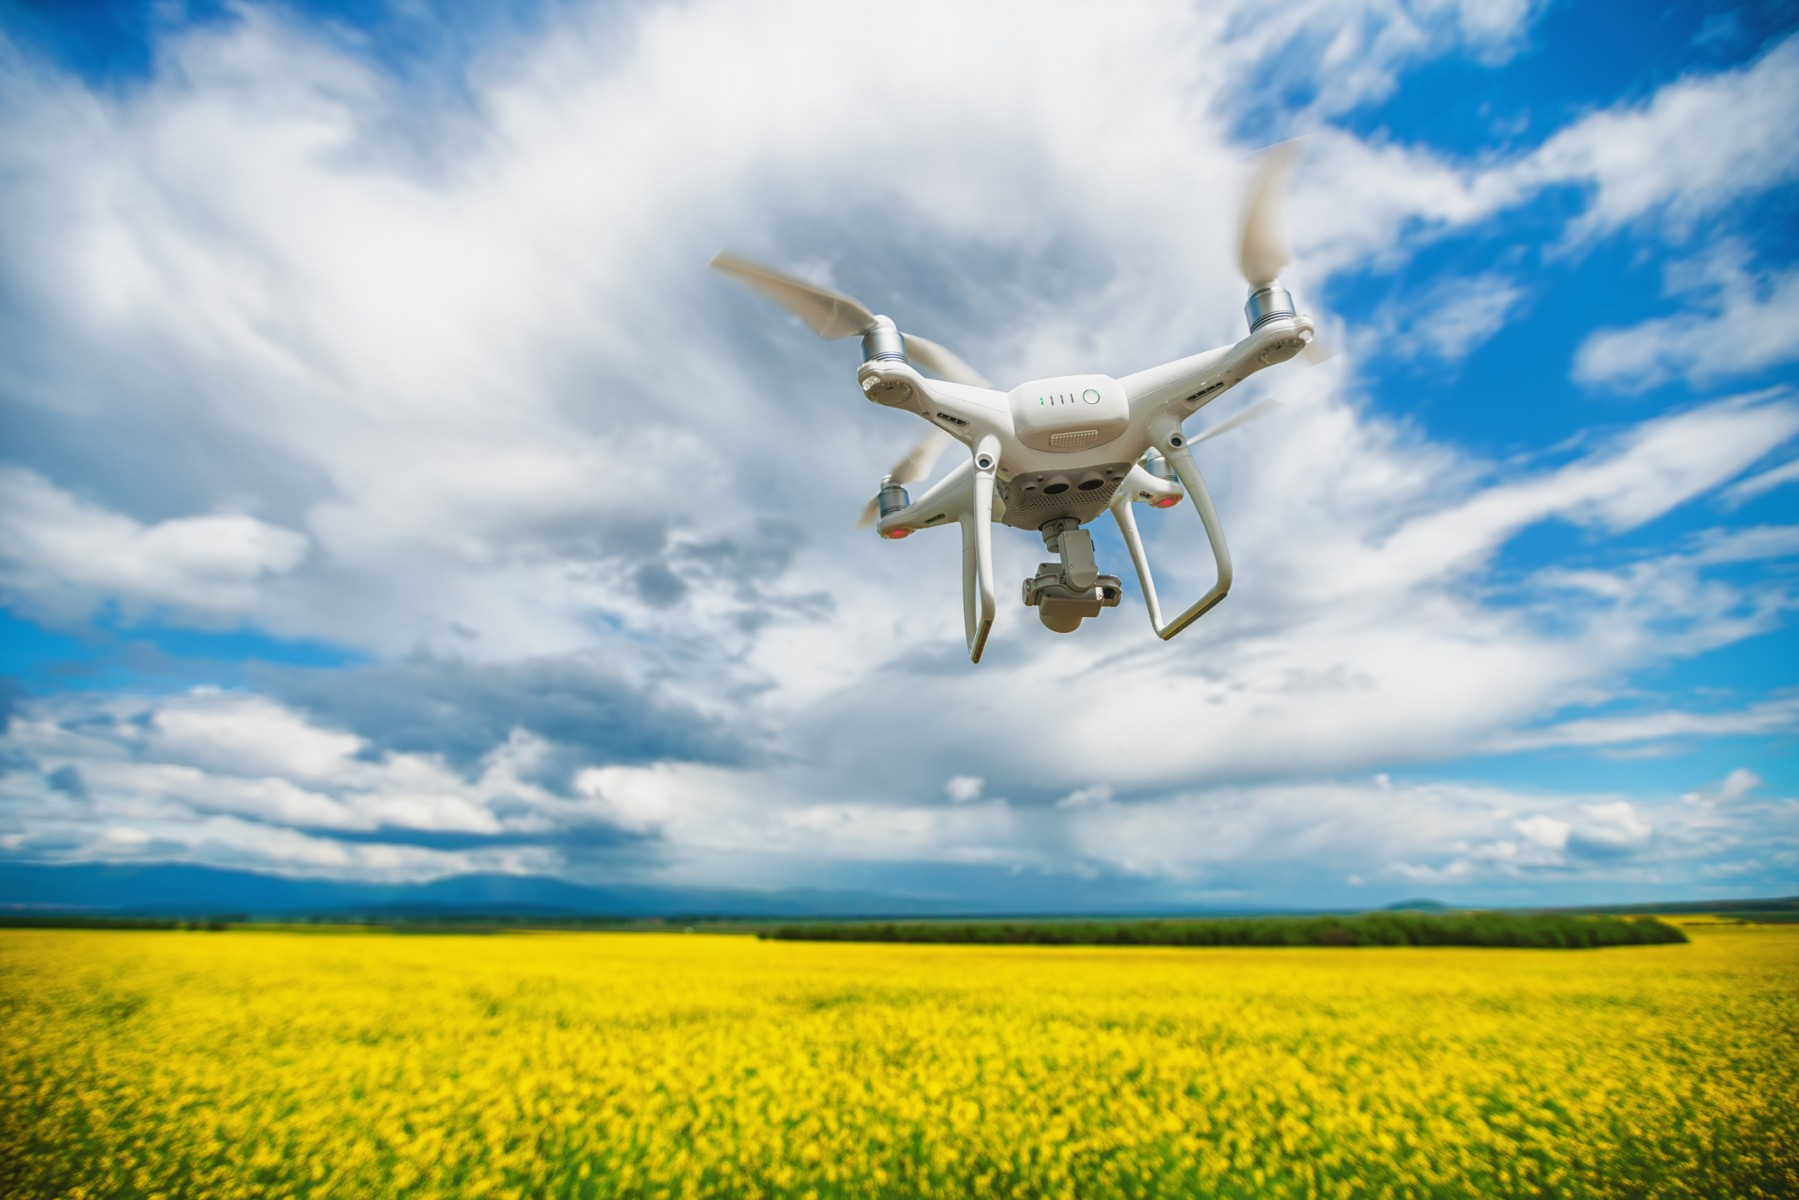 GettyImages-936319336_drone_over_field